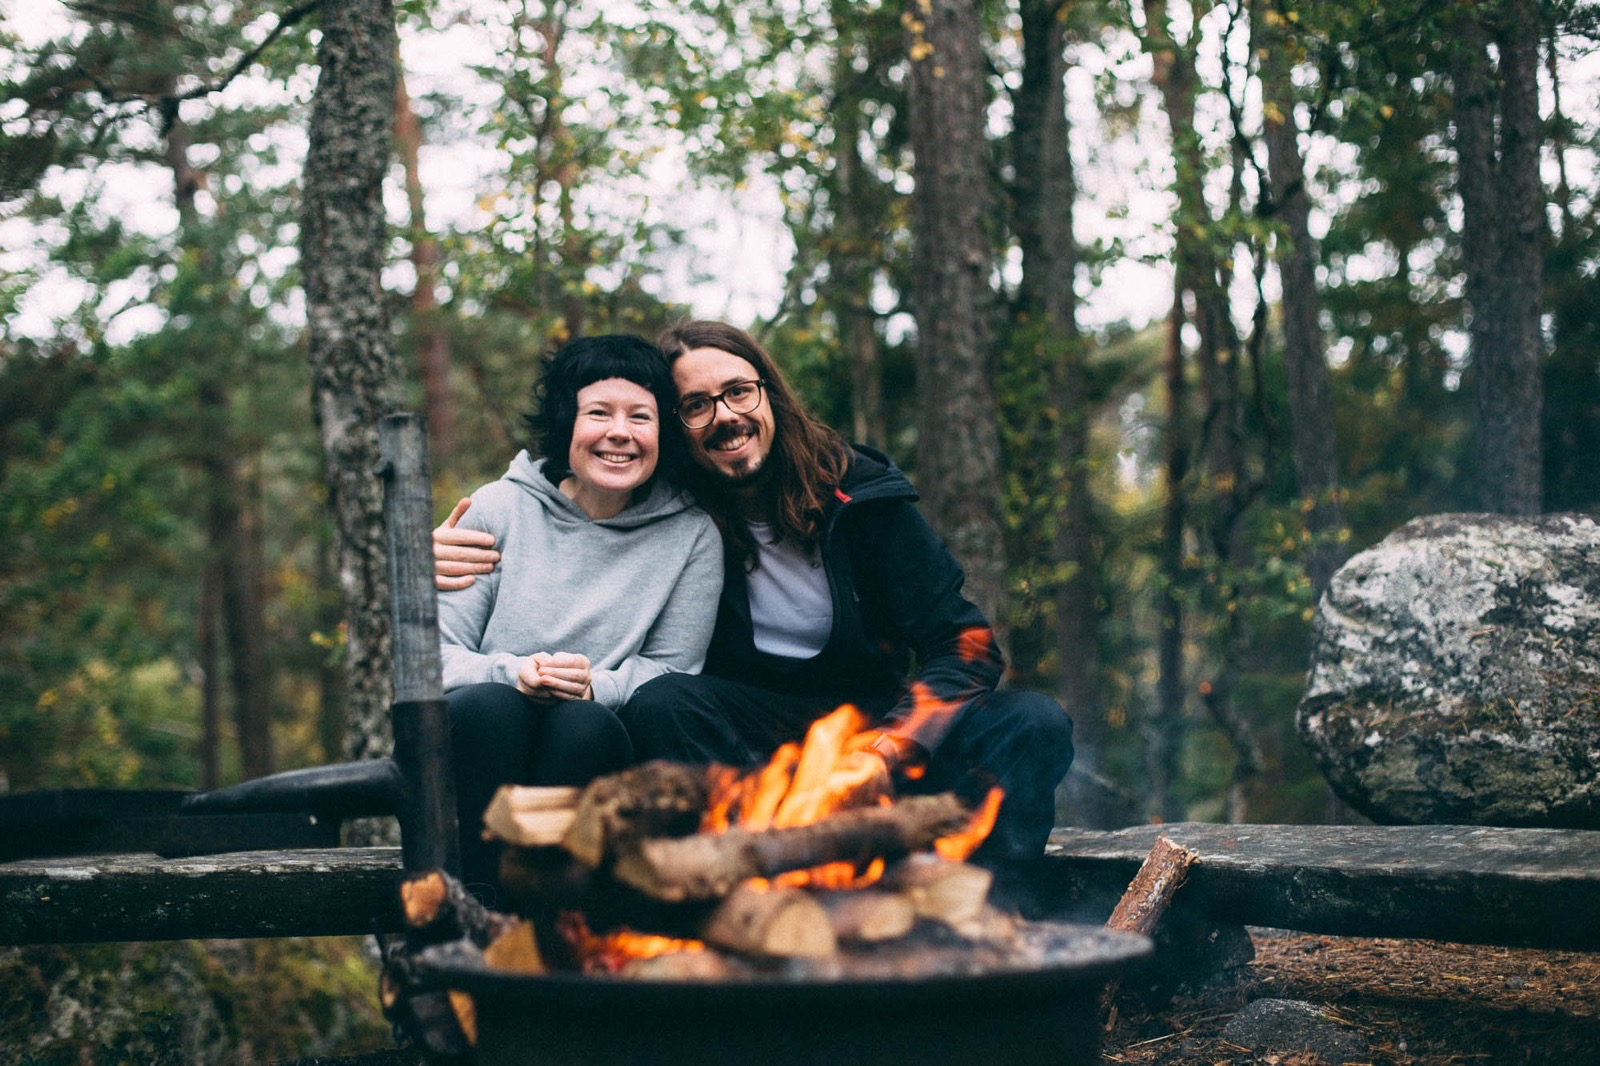 A smiling couple in a forest. Resting on a log close to a campfire.